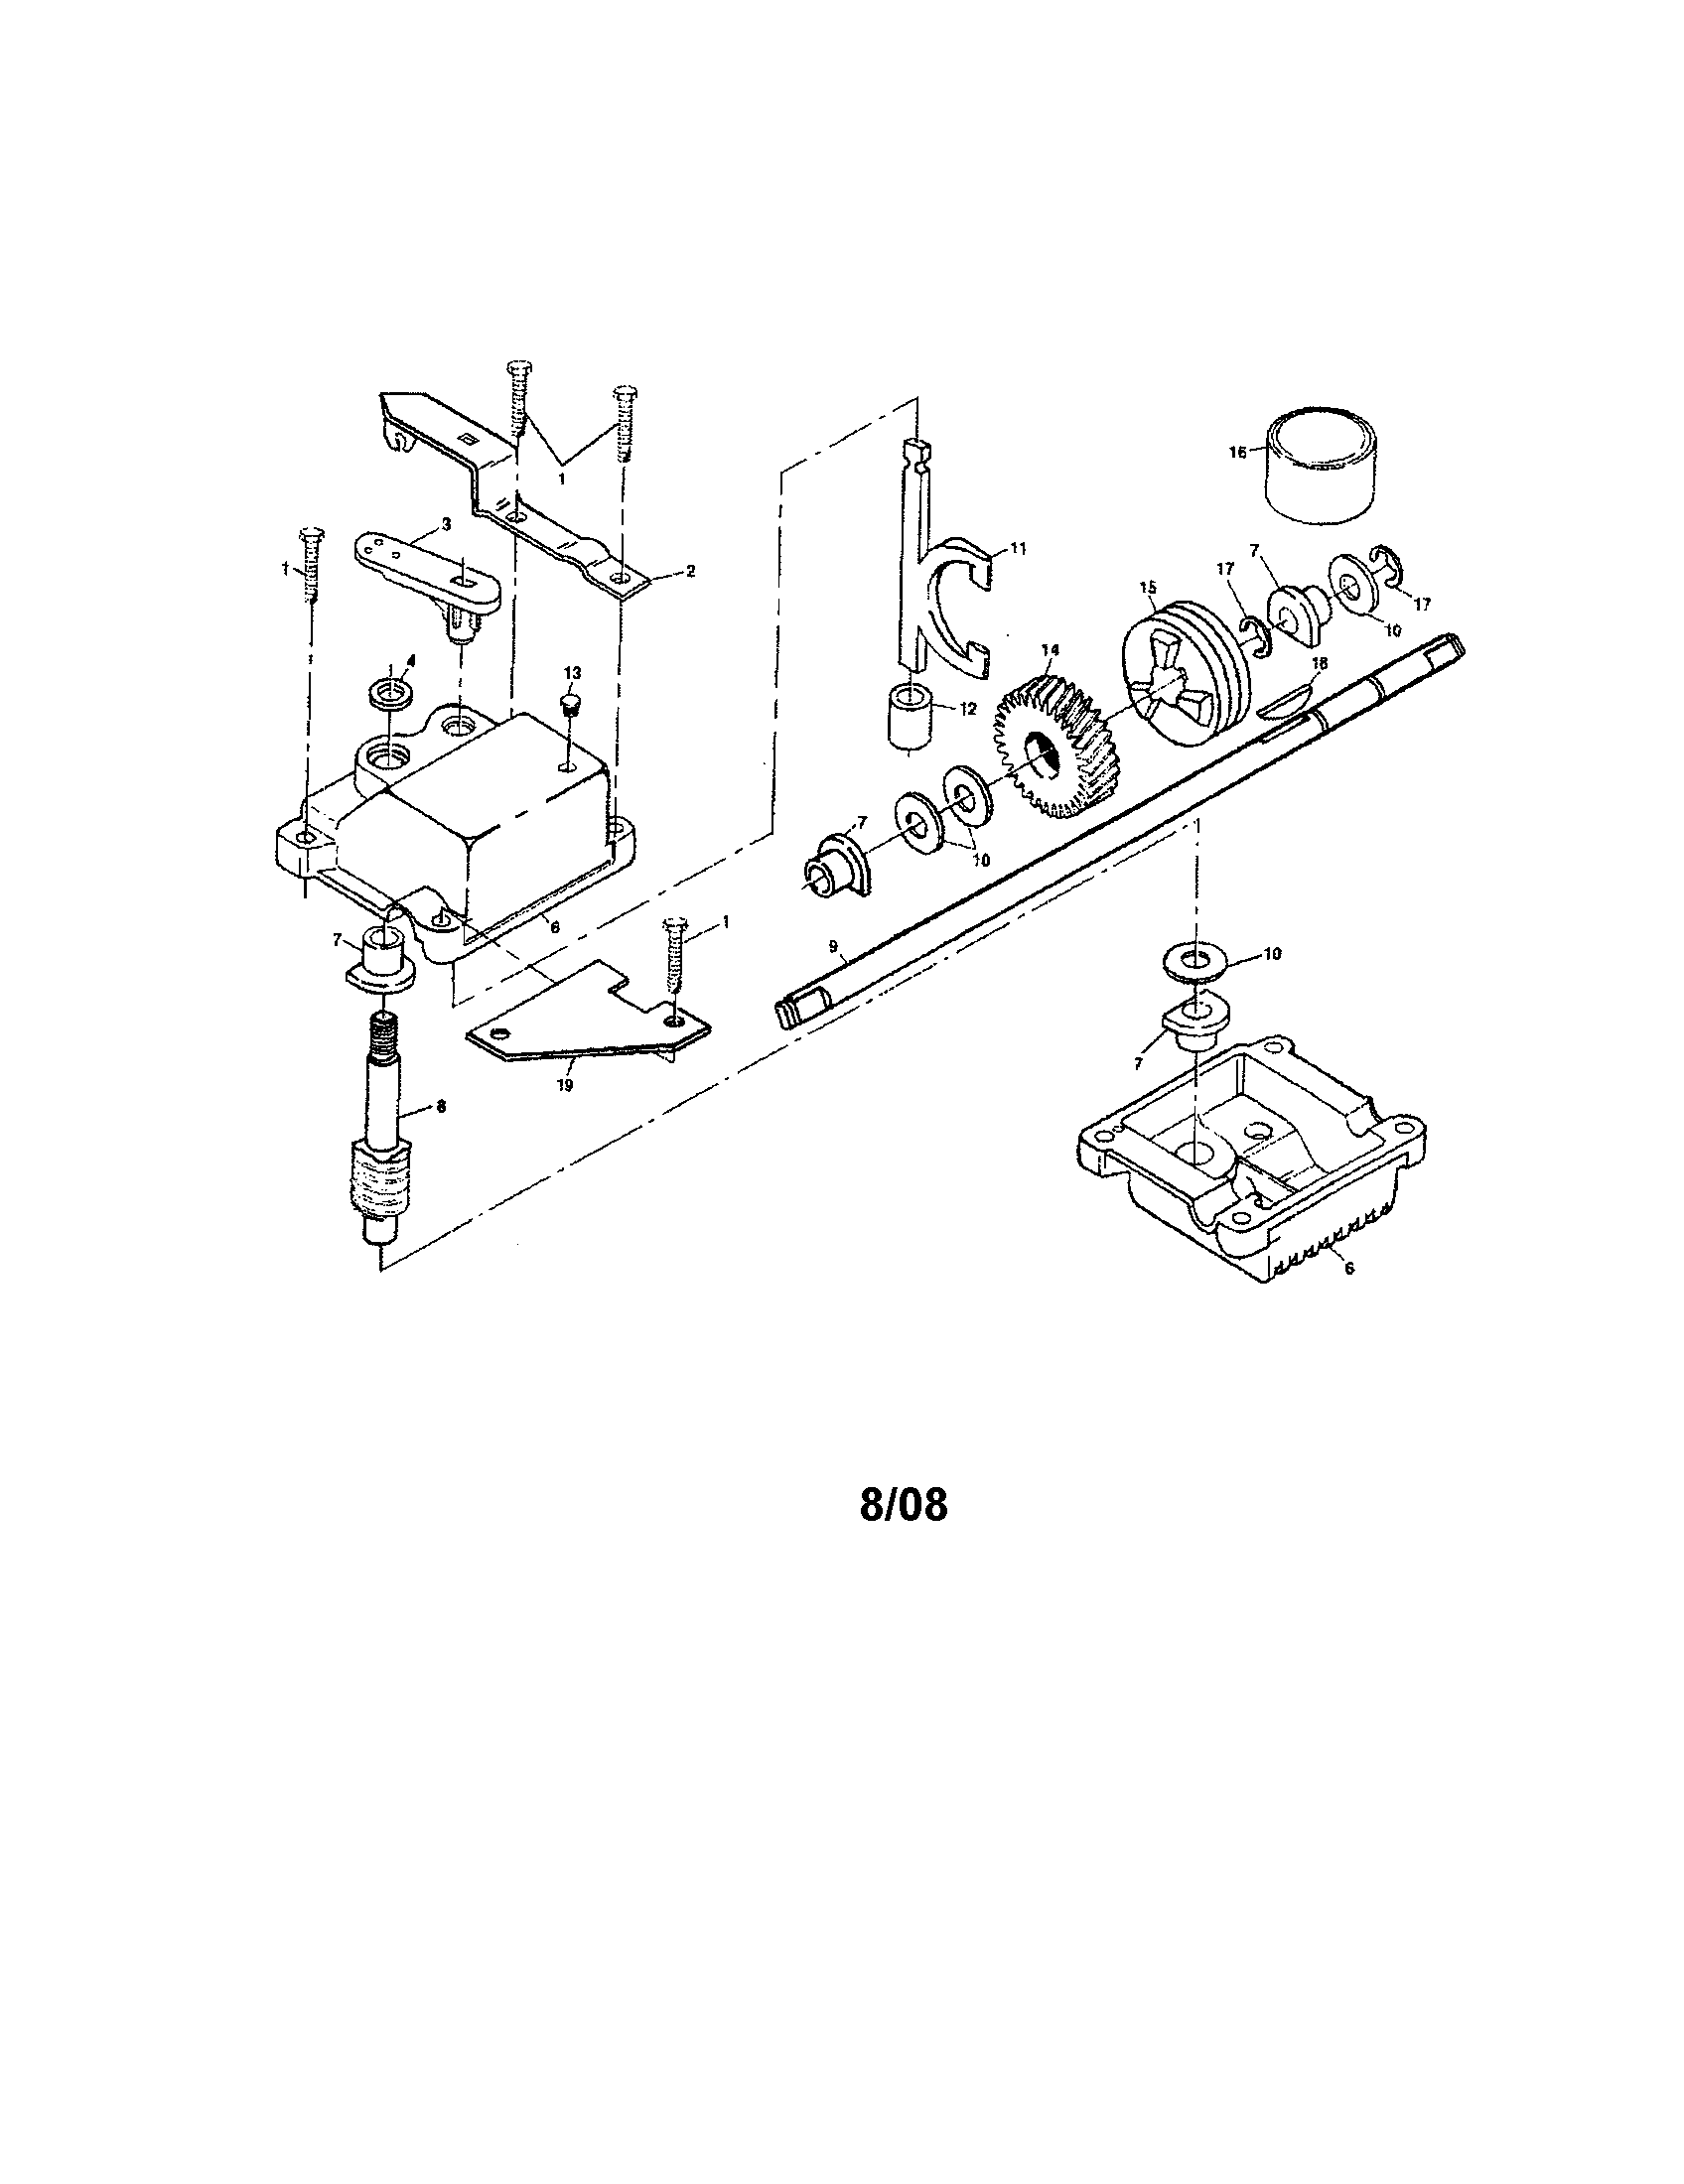 craftsman lt1000 parts manual pdf